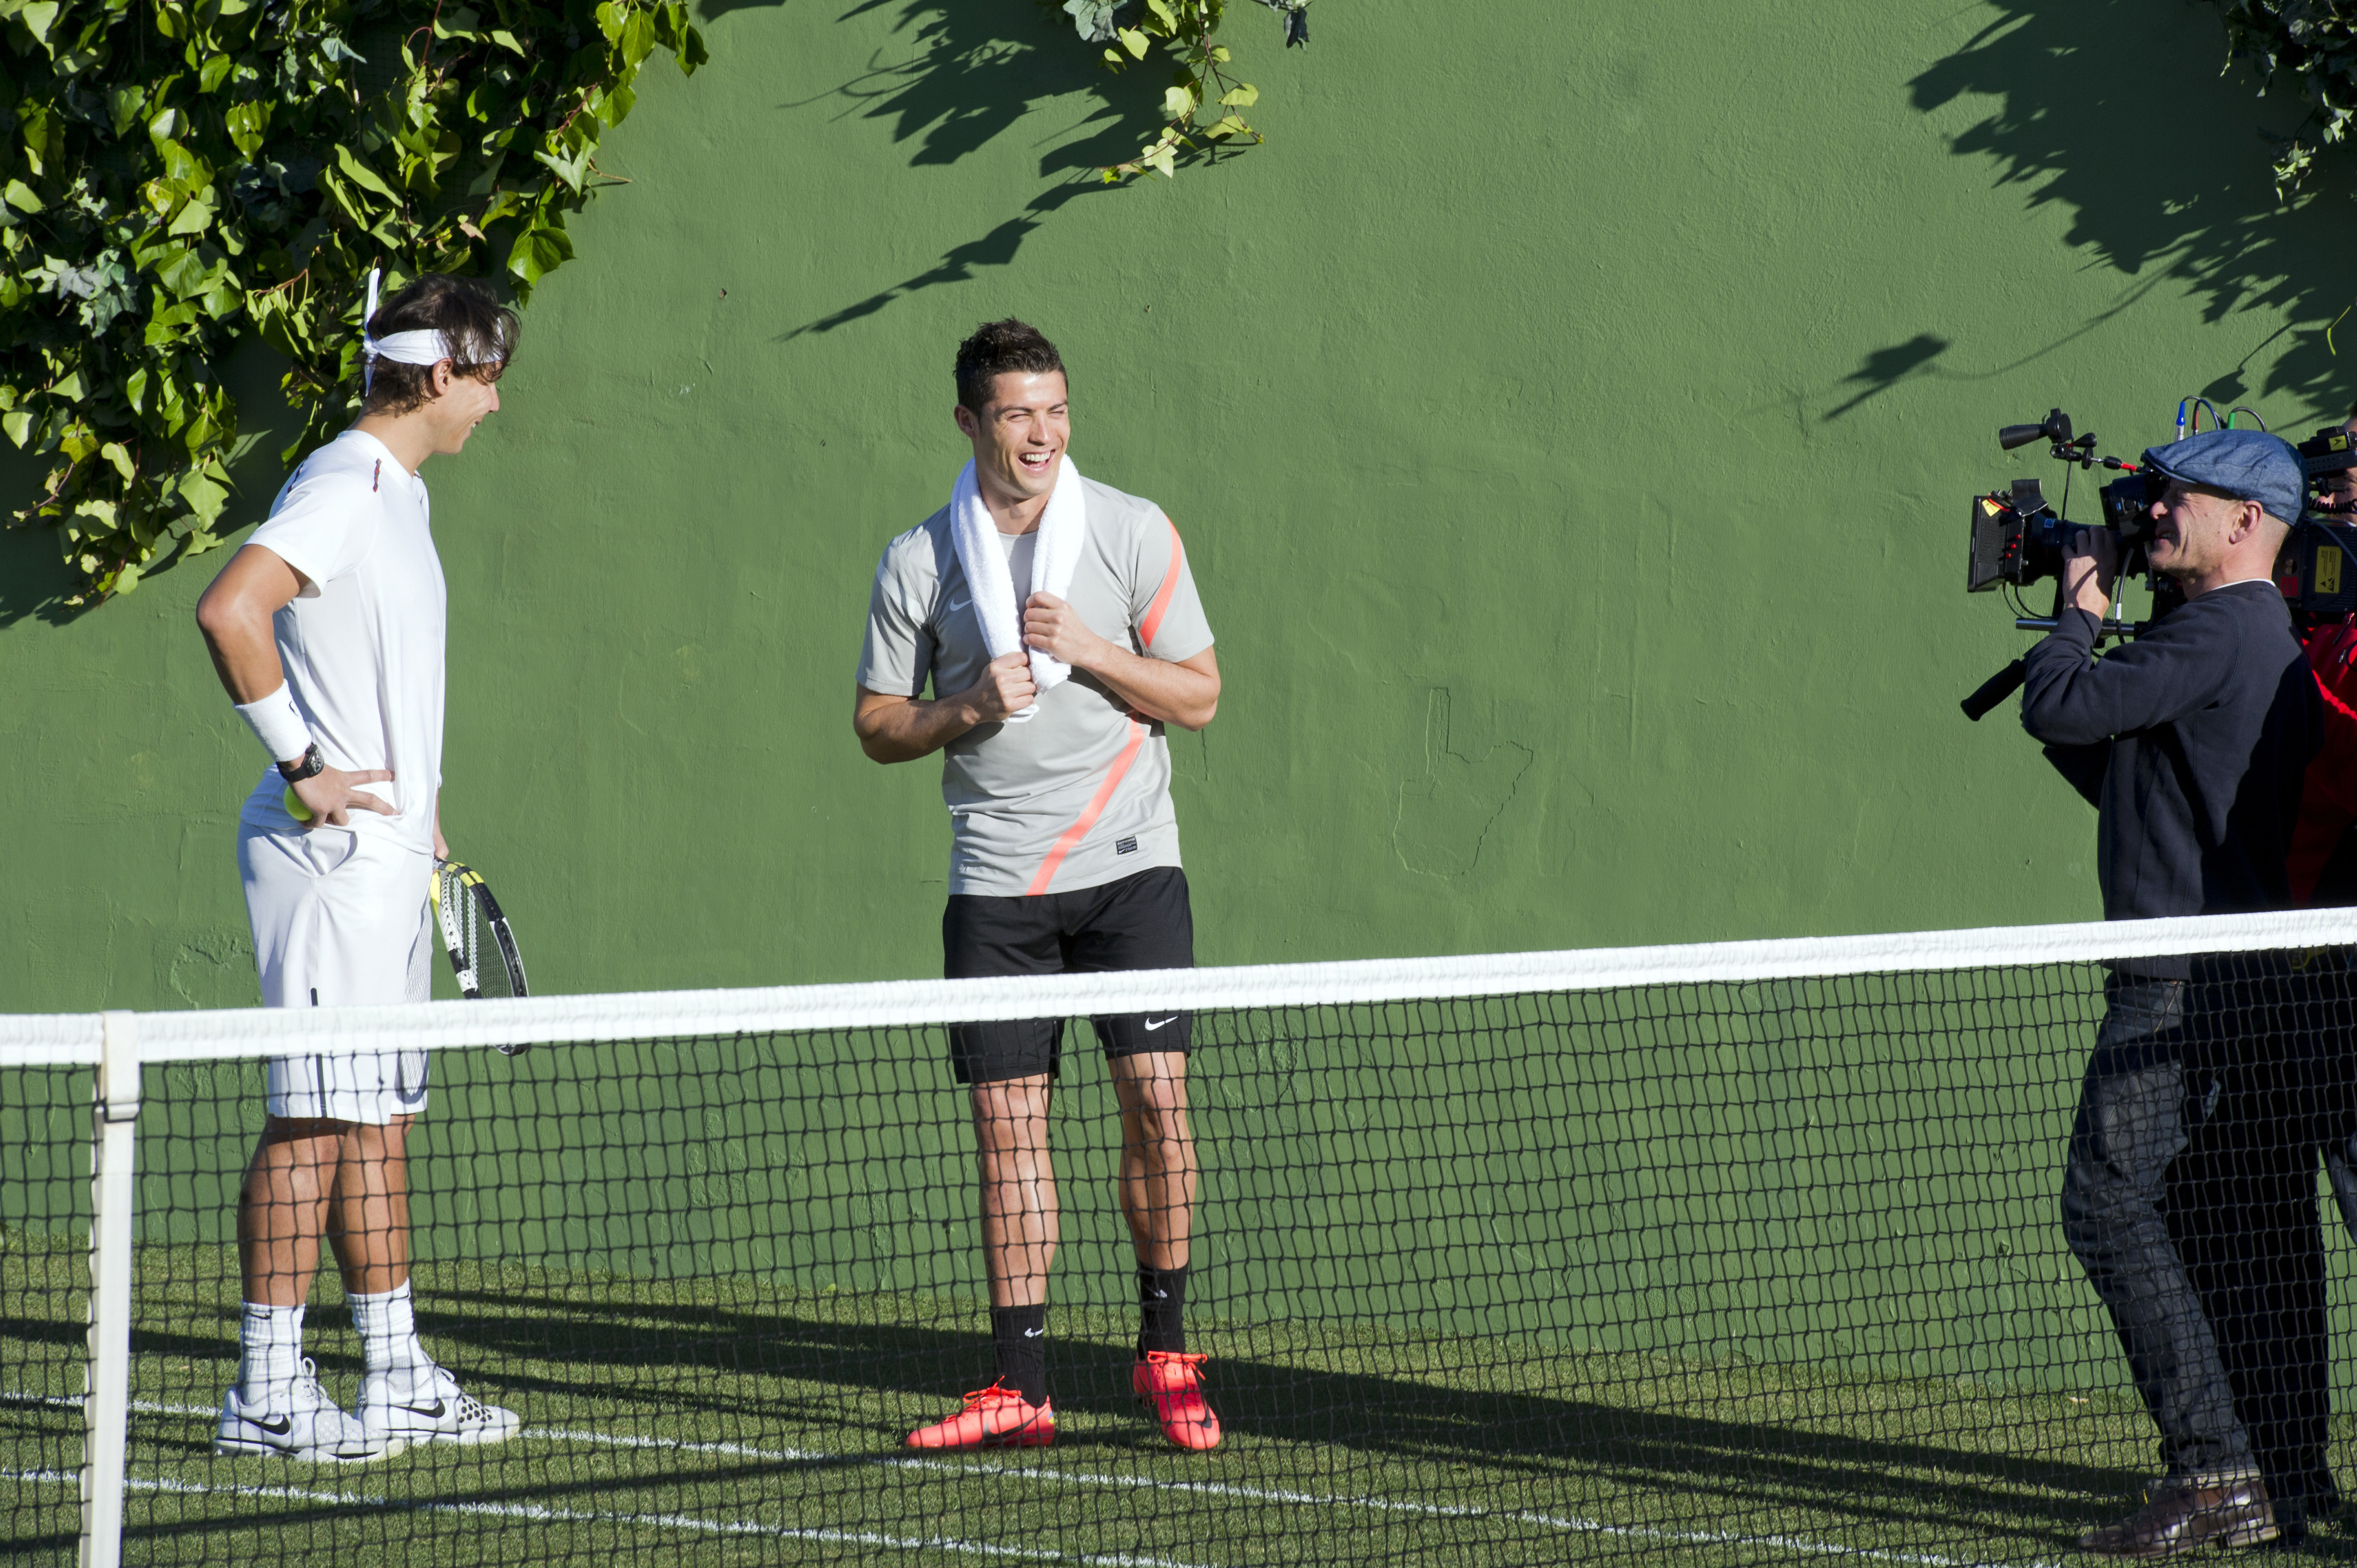 d3d884b31 Cristiano Ronaldo Takes On Rafael Nadal At Tennis In Flashy New Nike Viral  (Video    Behind The Scenes  Photos)